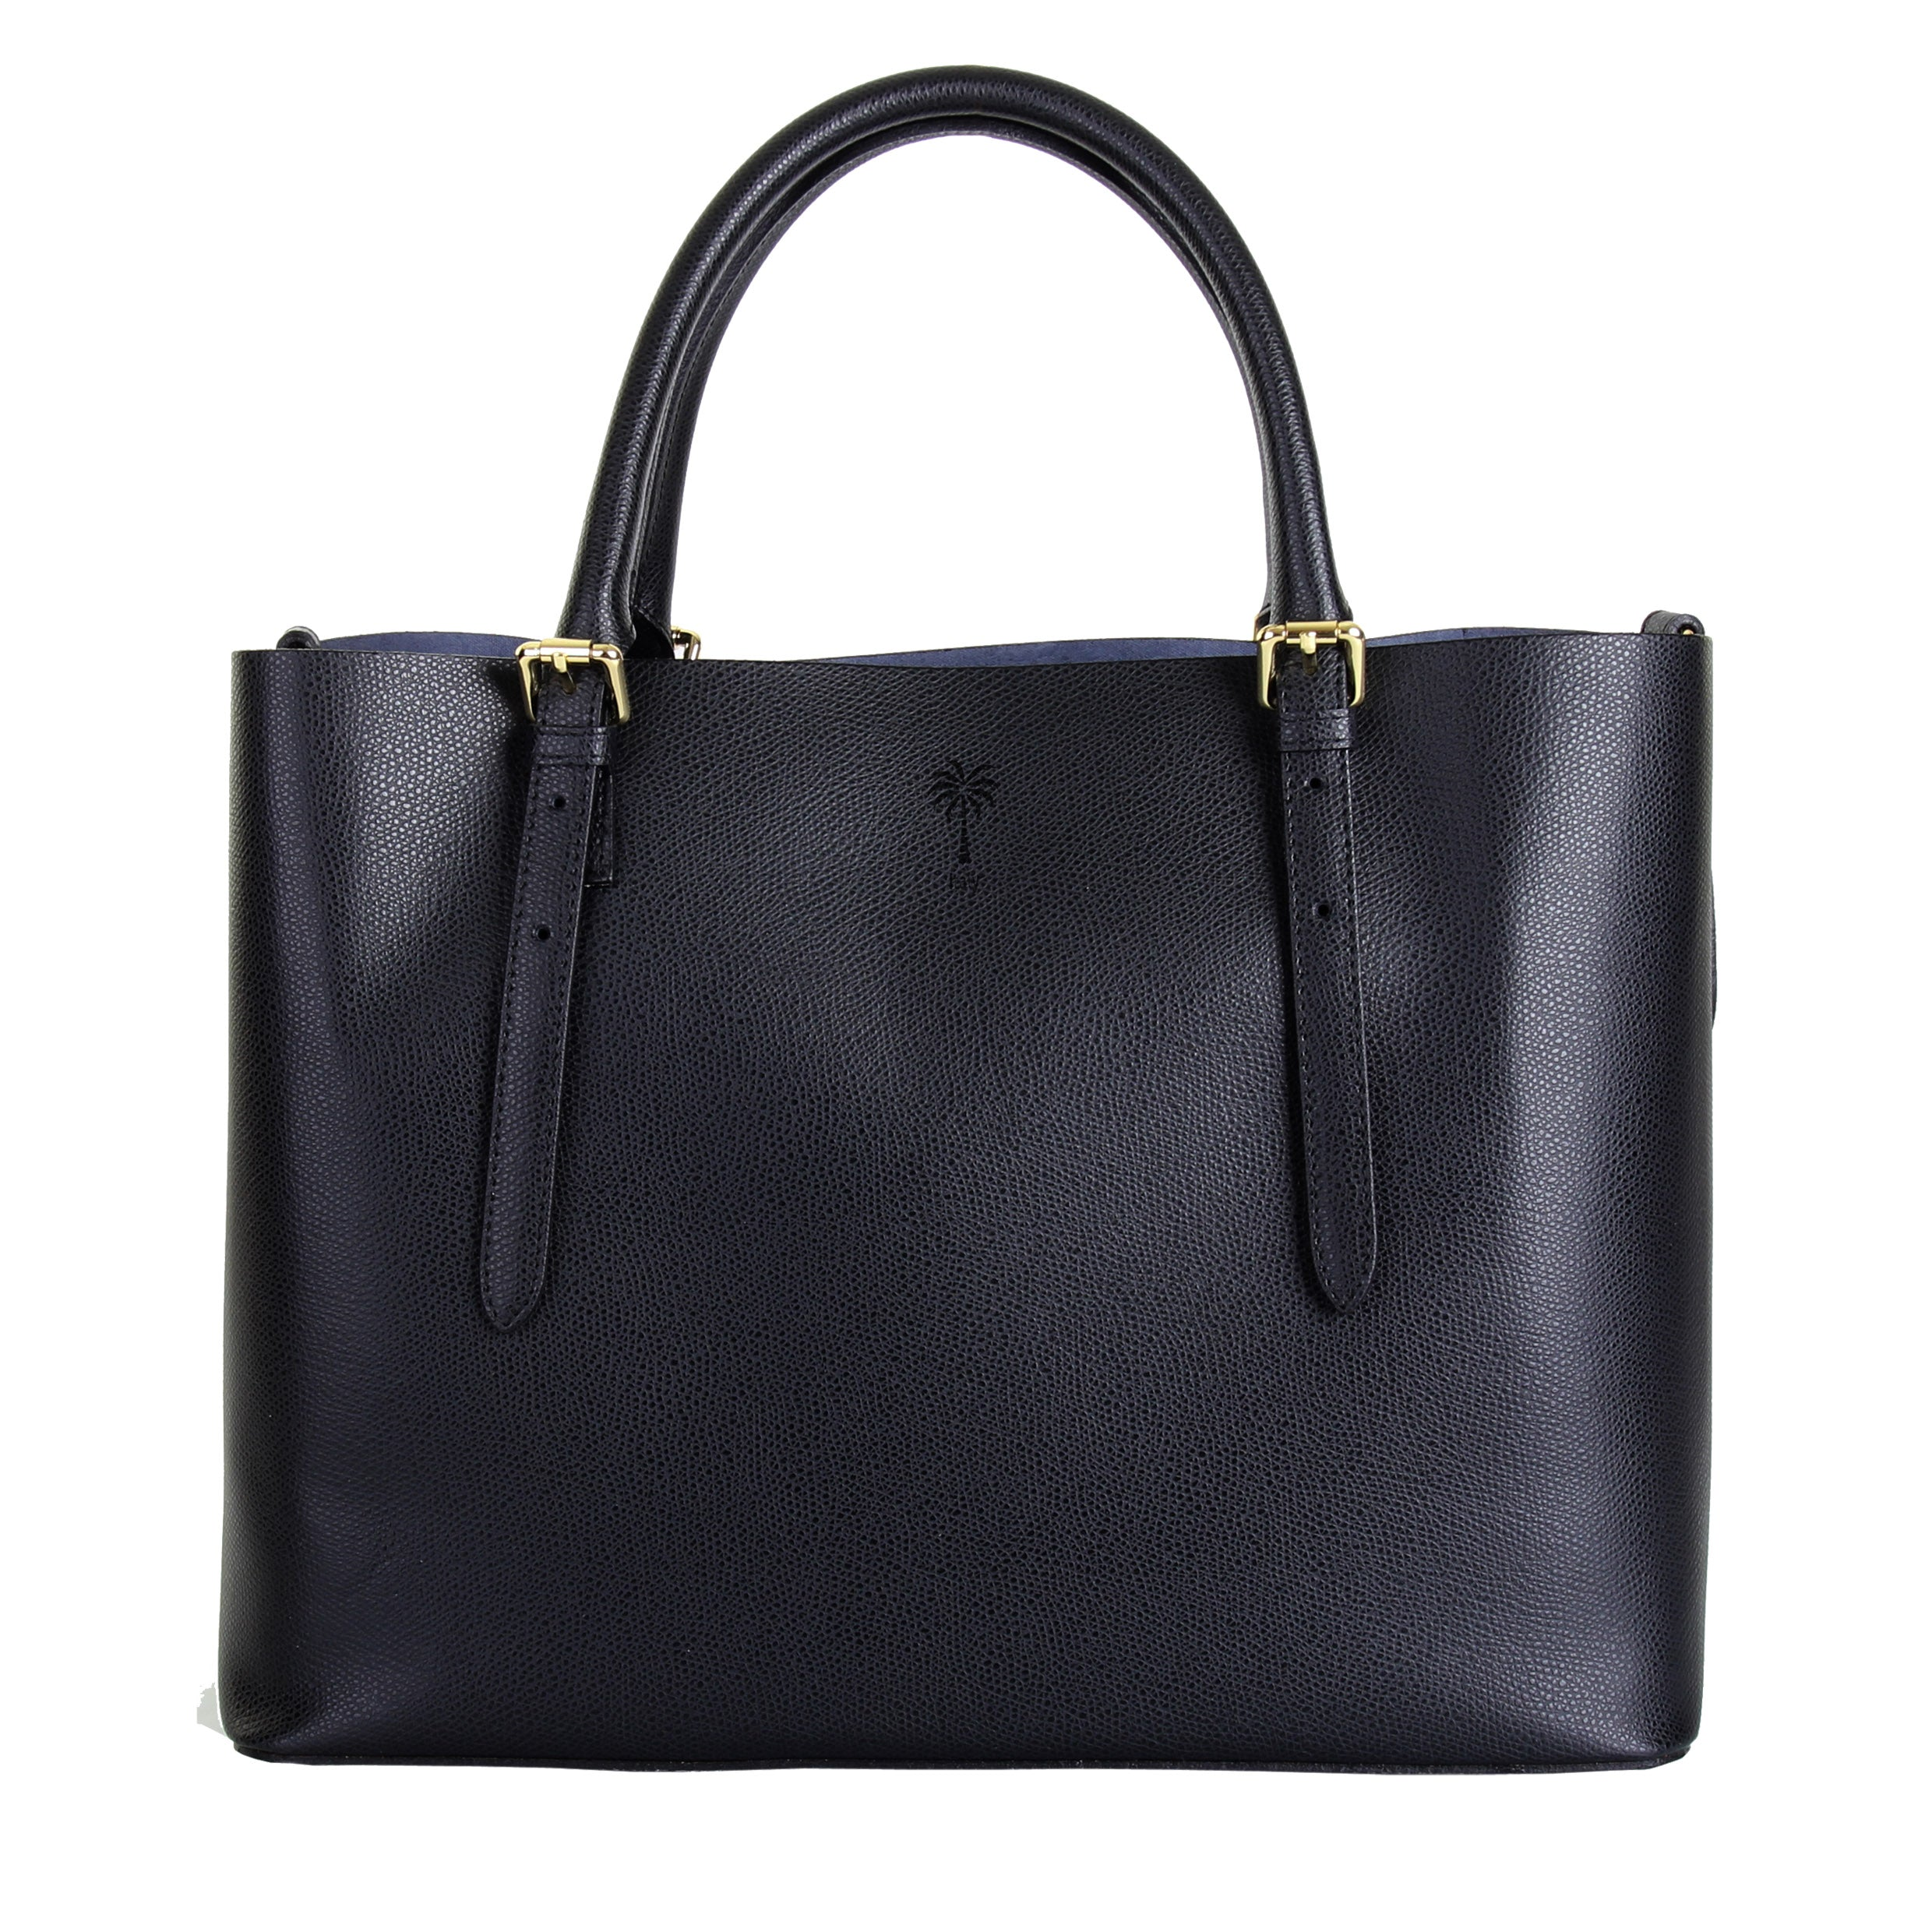 JENNIFER BLACK ITALIAN LEATHER TOTE - www.marlafiji.com